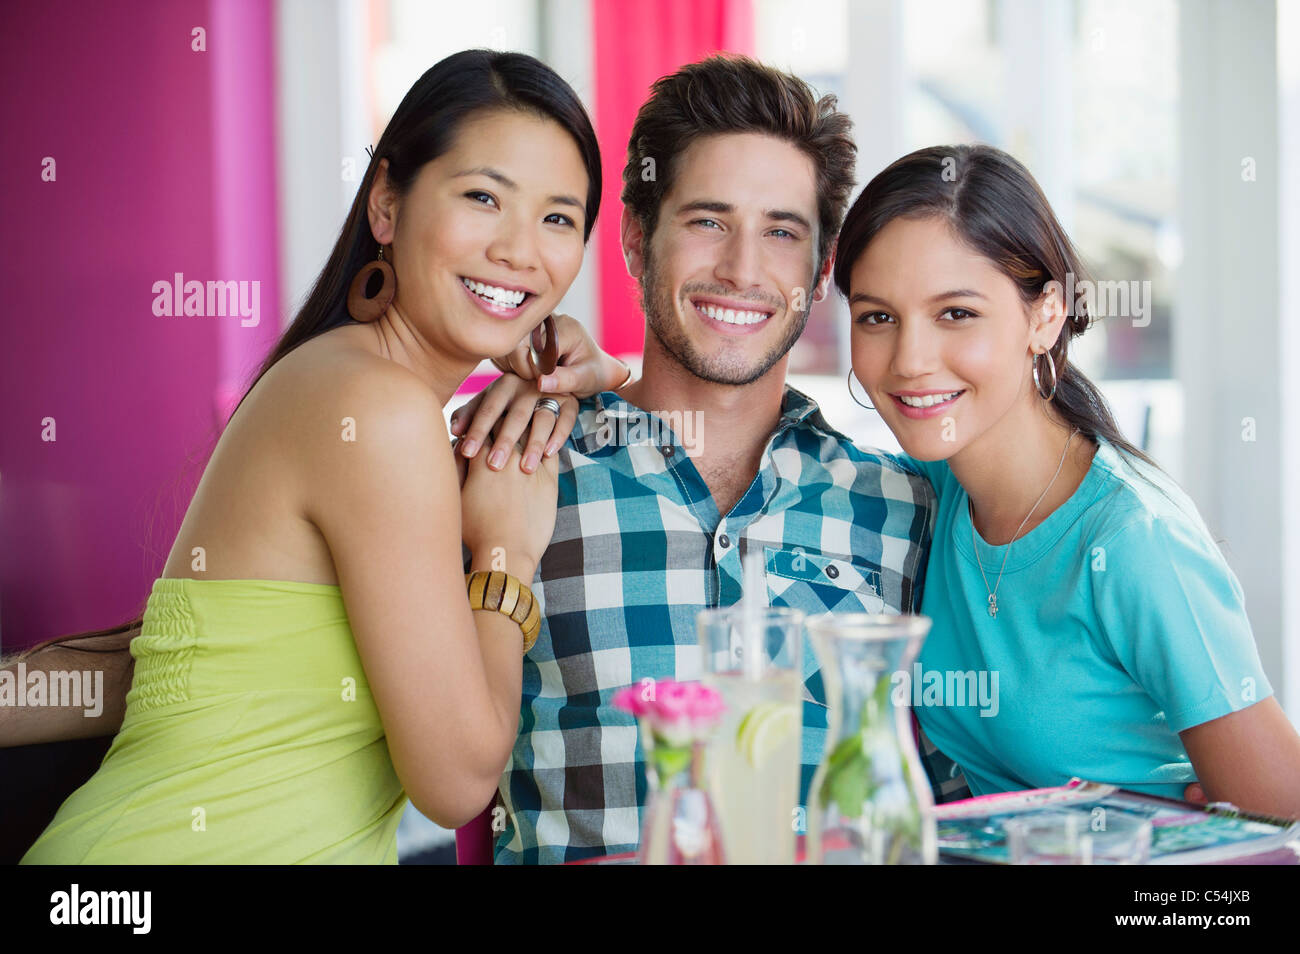 Women sitting with hand on a man's shoulders in restaurant - Stock Image